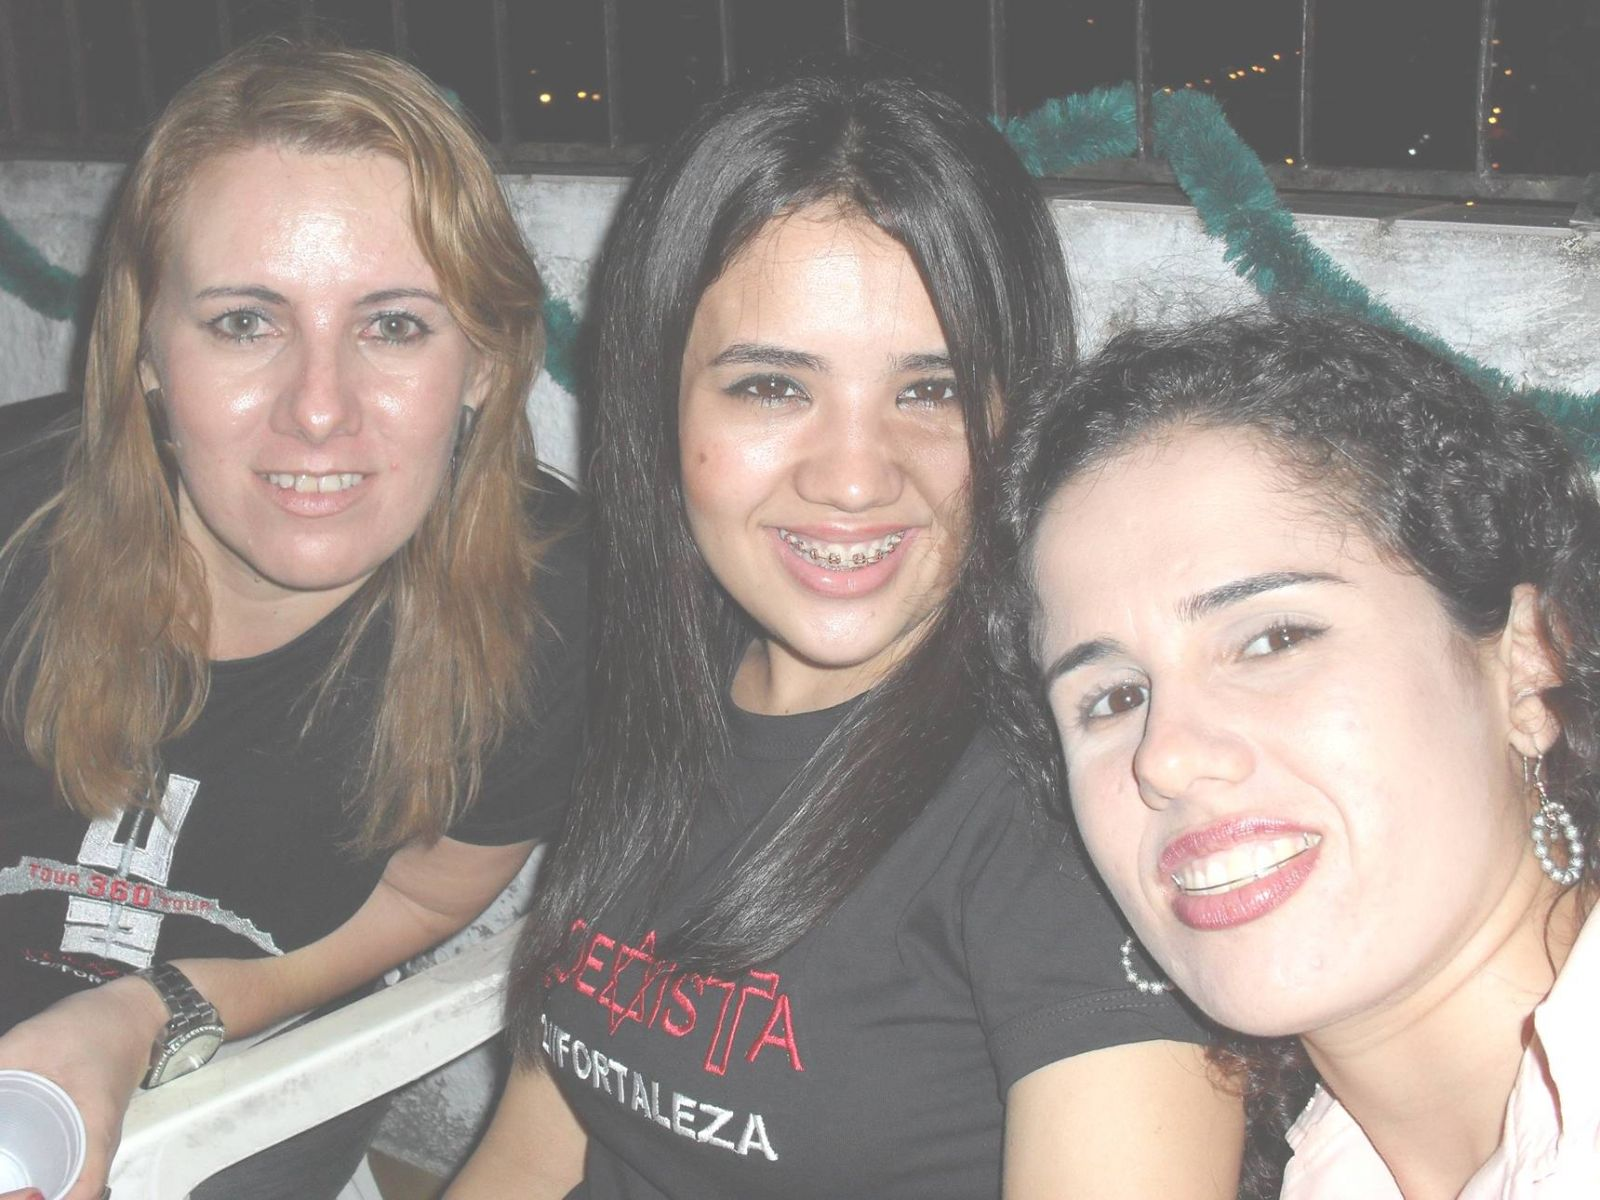 U2 girls of the city Fortaleza, Brazil